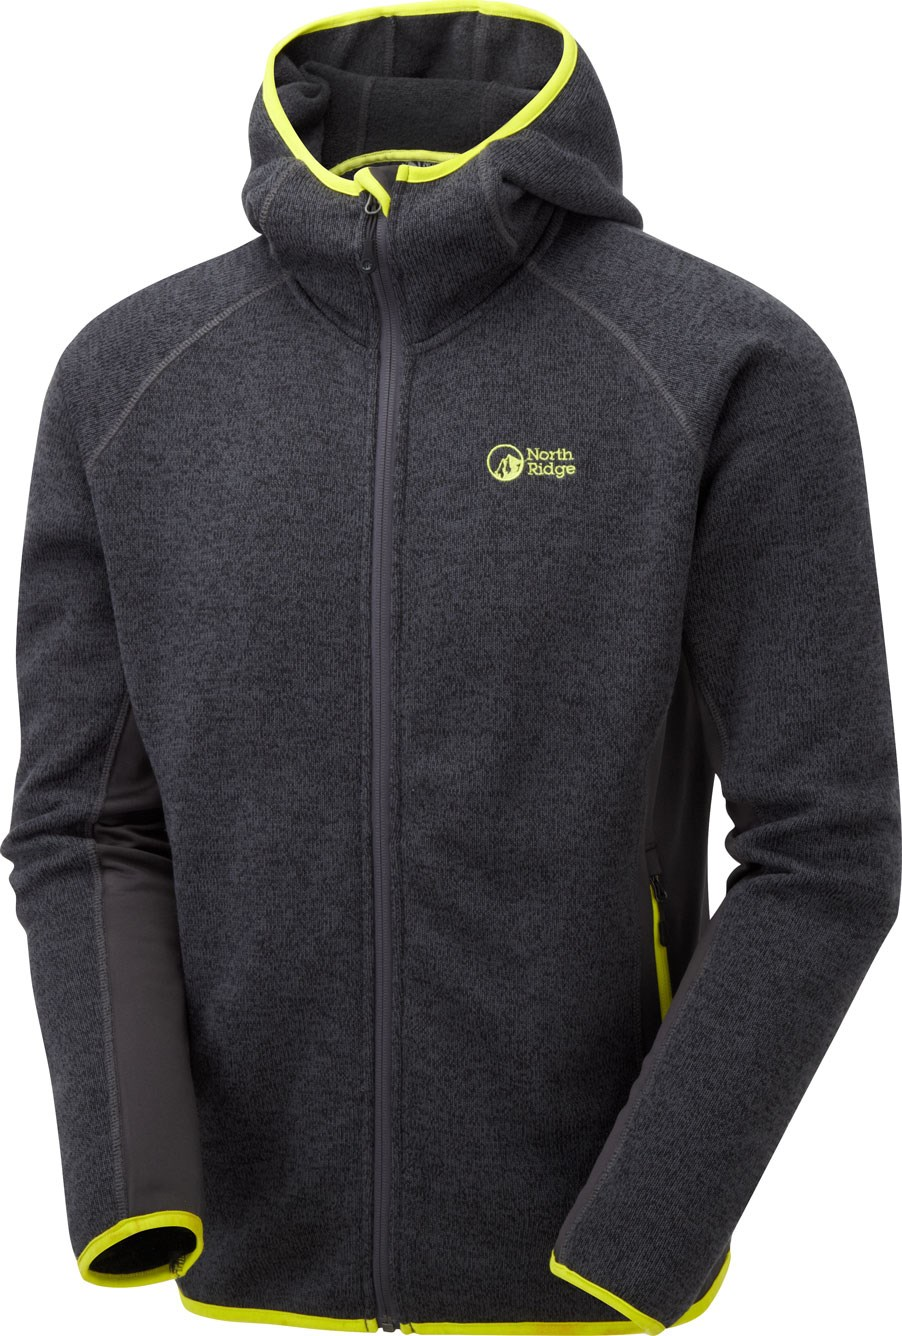 Mens Fleece Jackets and Midweight Fleeces | GO Outdoors